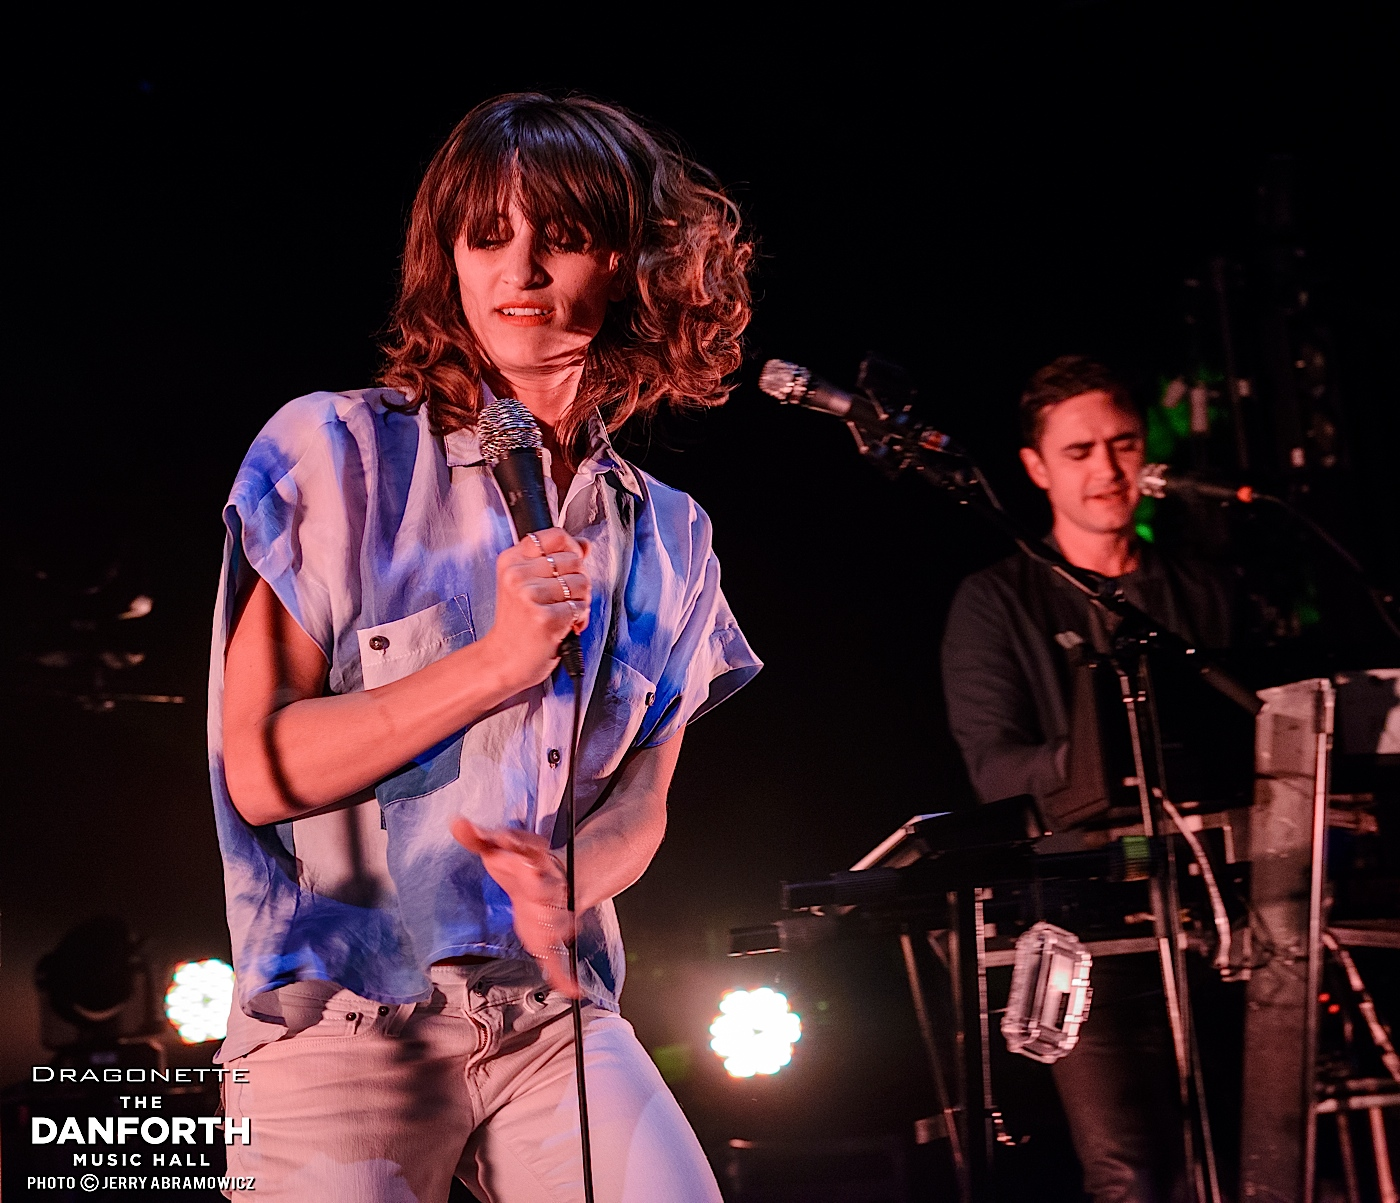 20130510 Dragonette performs at The Danforth Music Hall Toronto 0456